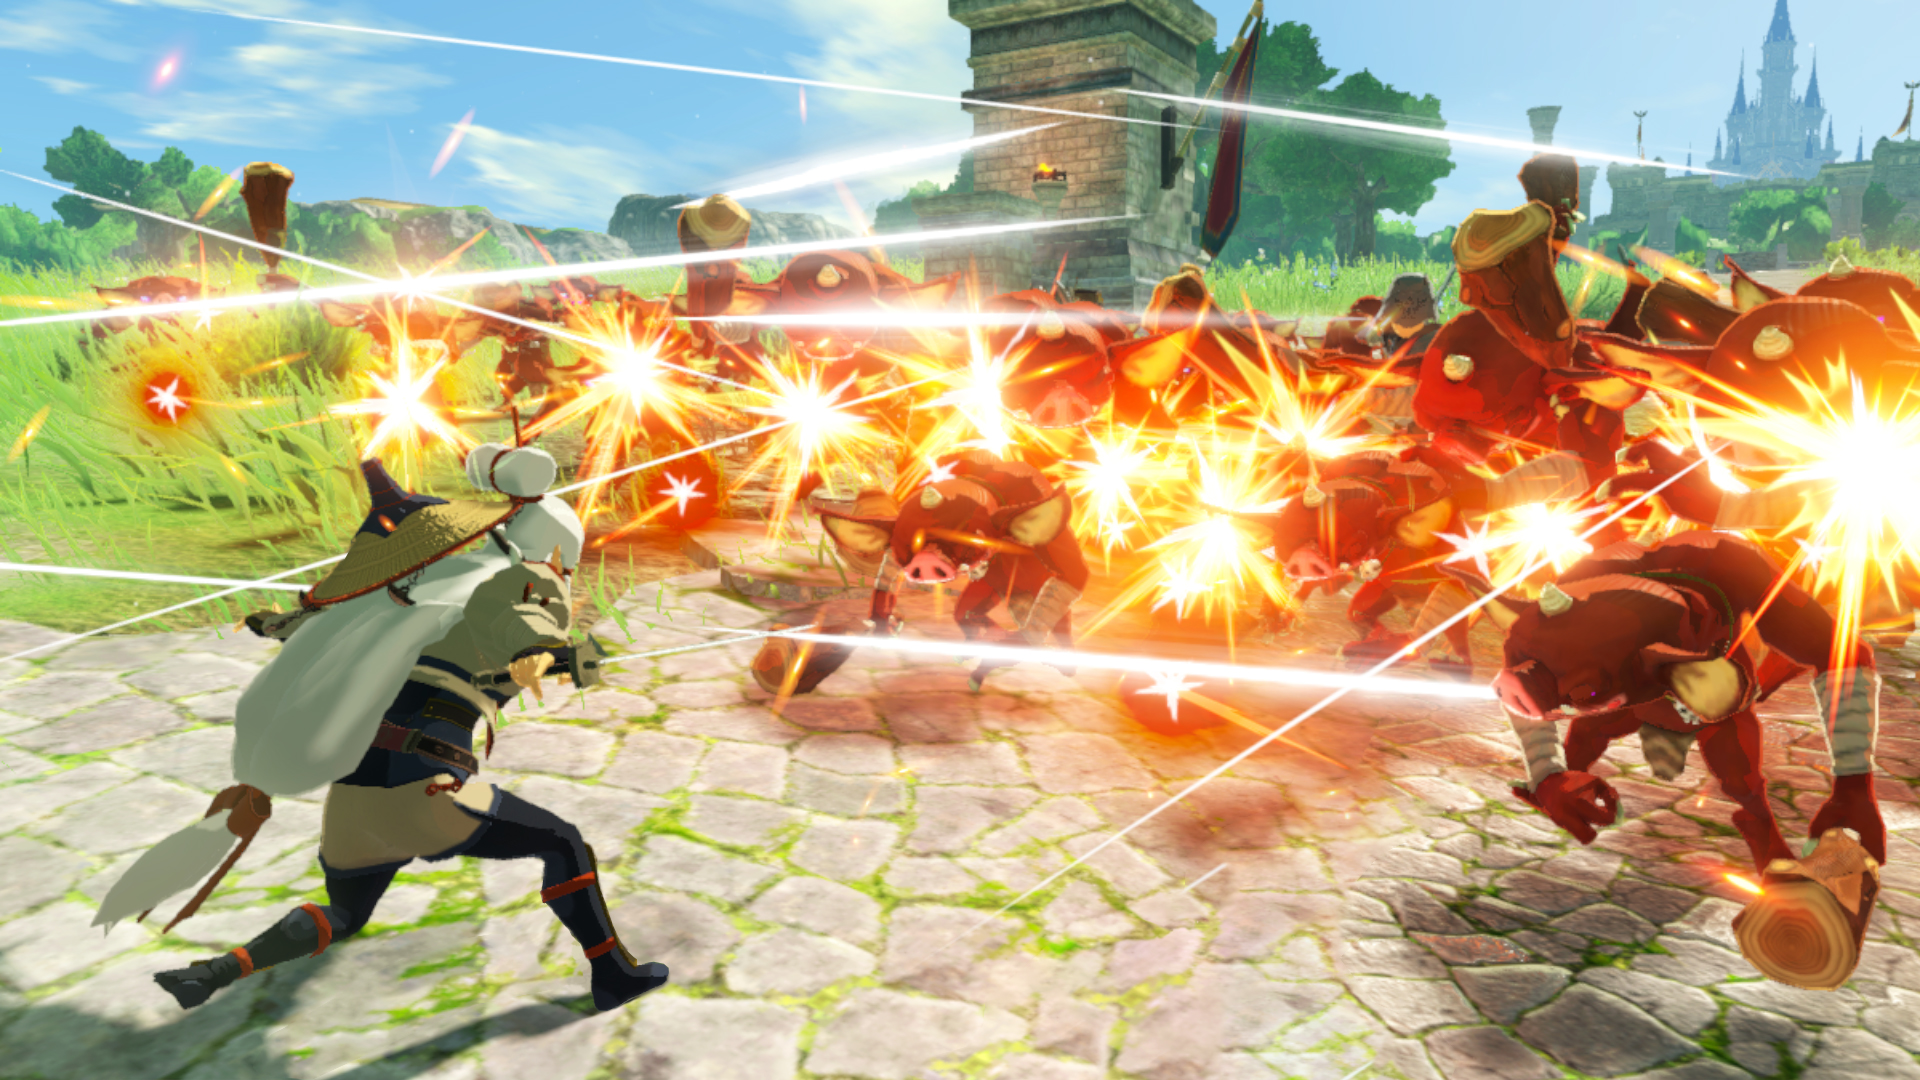 Hyrule Warriors: Age of Calamity Gameplay and New Trailer!